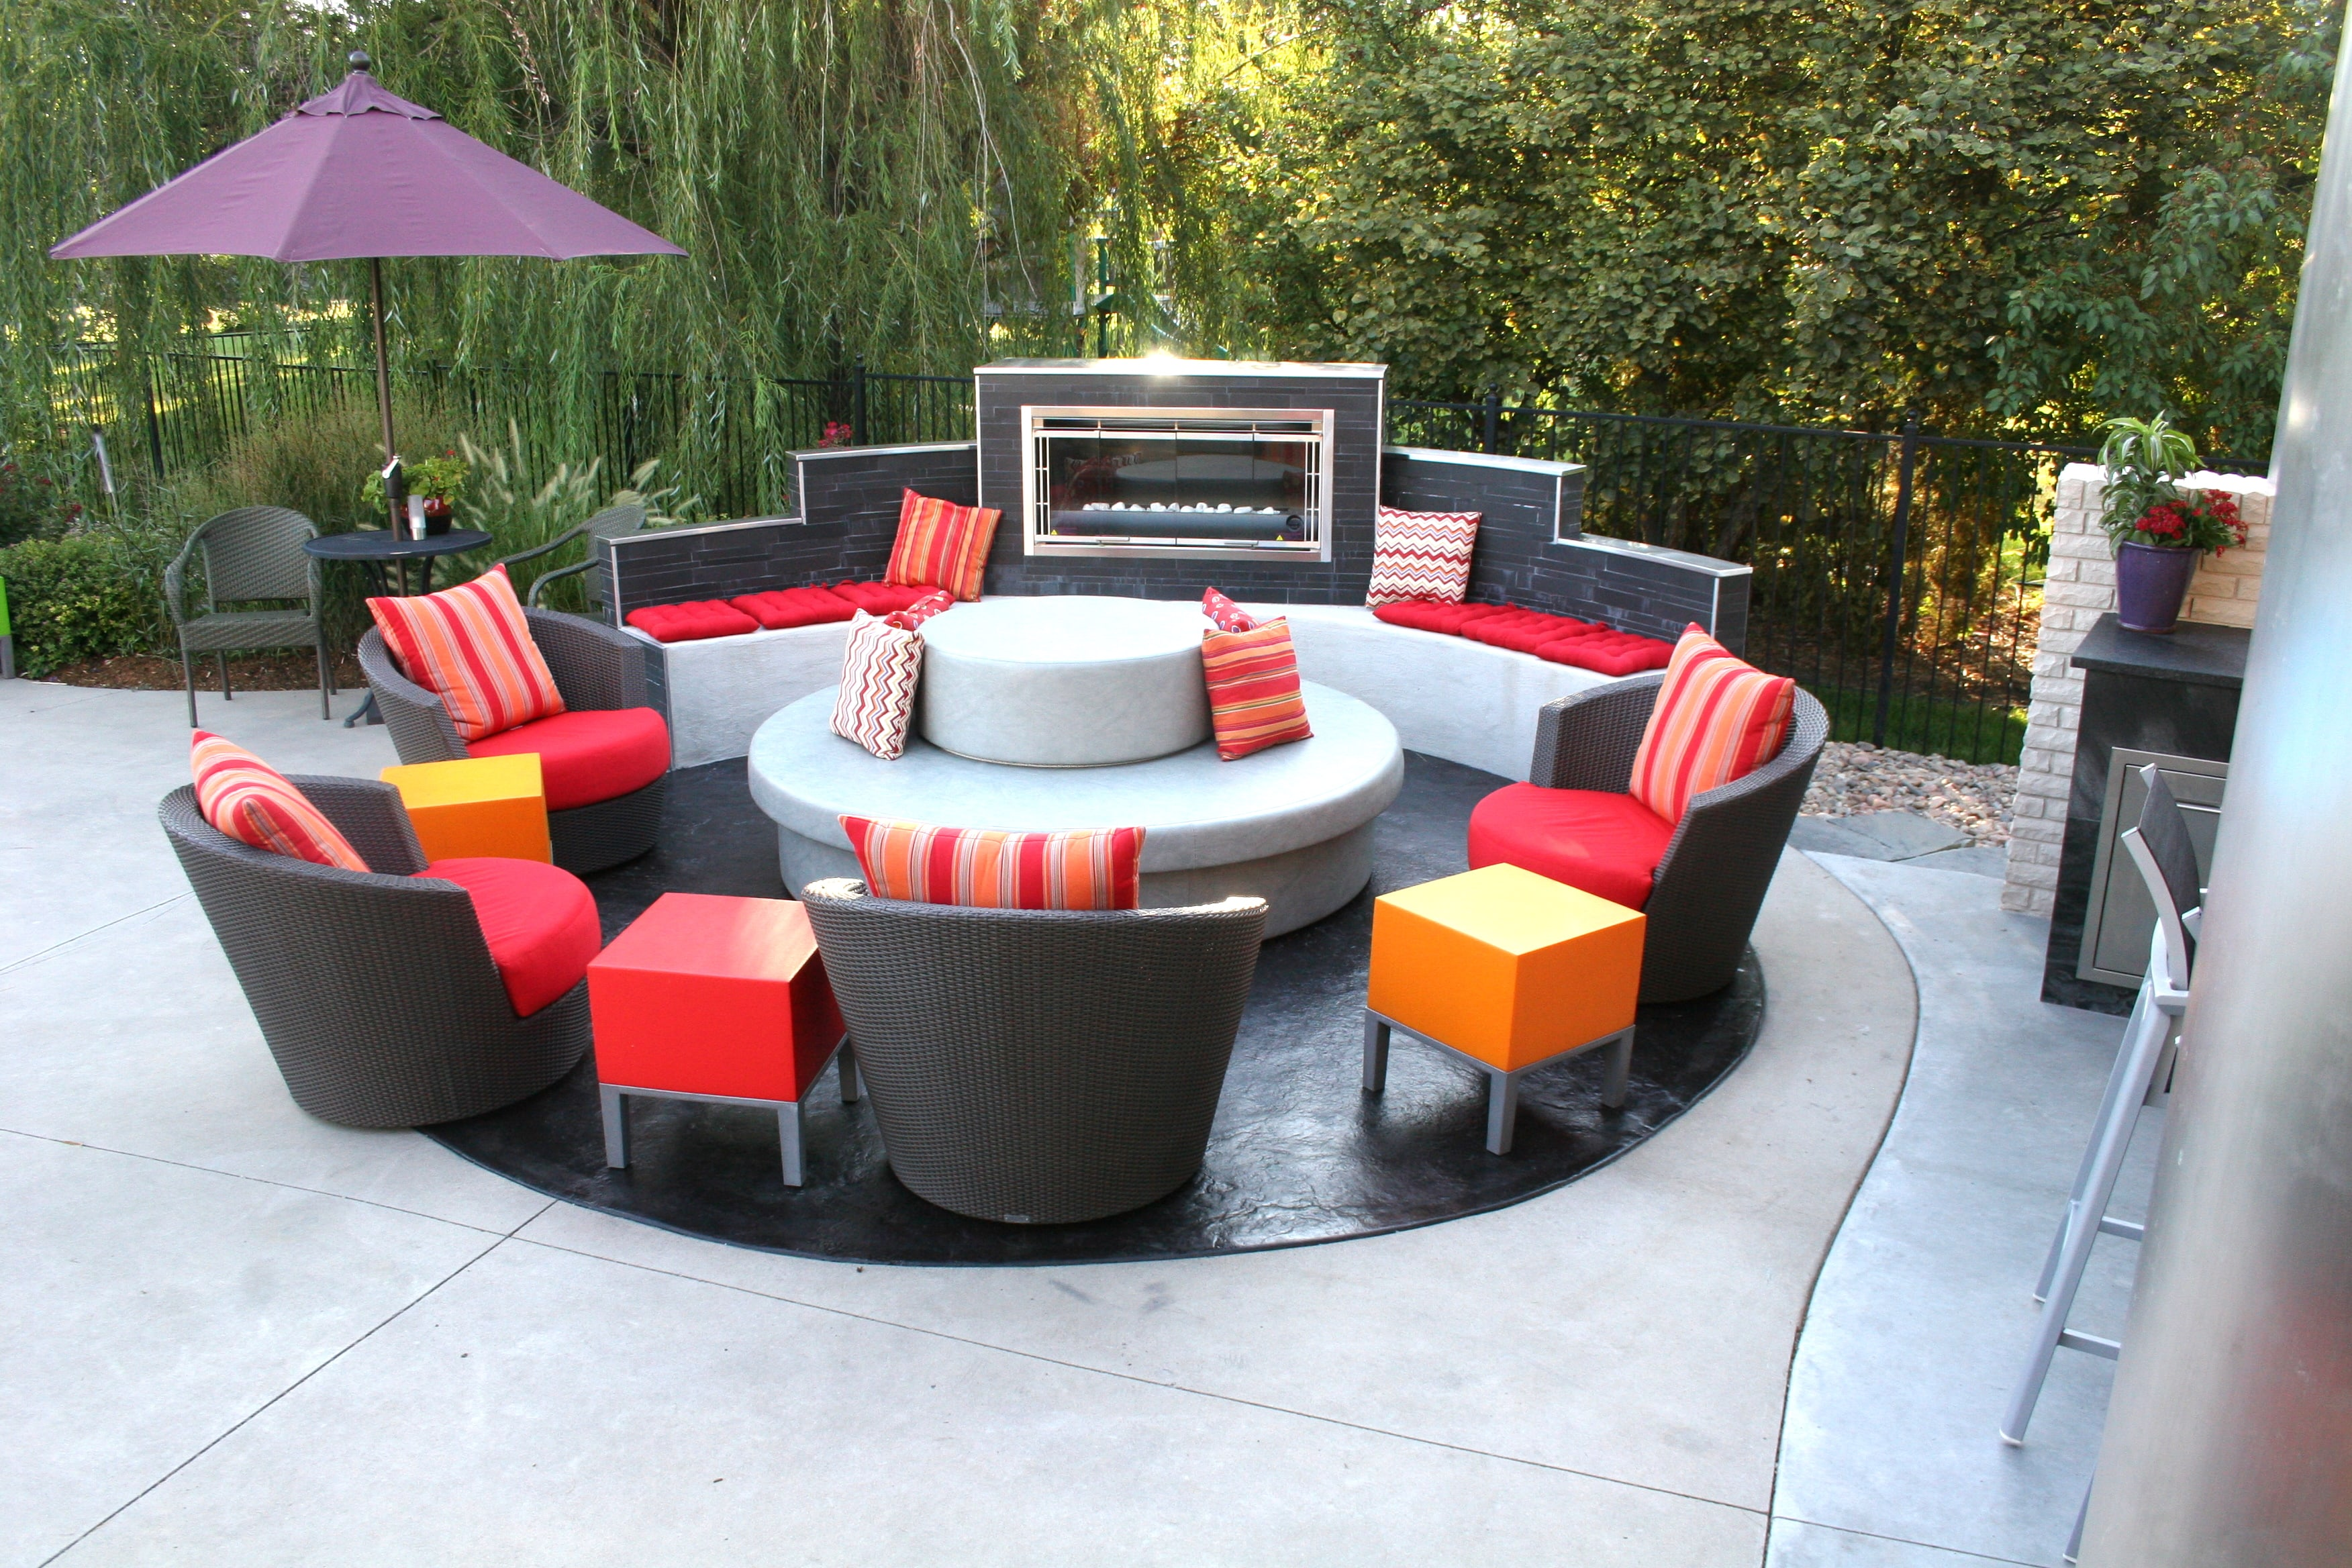 Tri Level Basalt Modern Outdoor Fireplace surrounding circular seating area